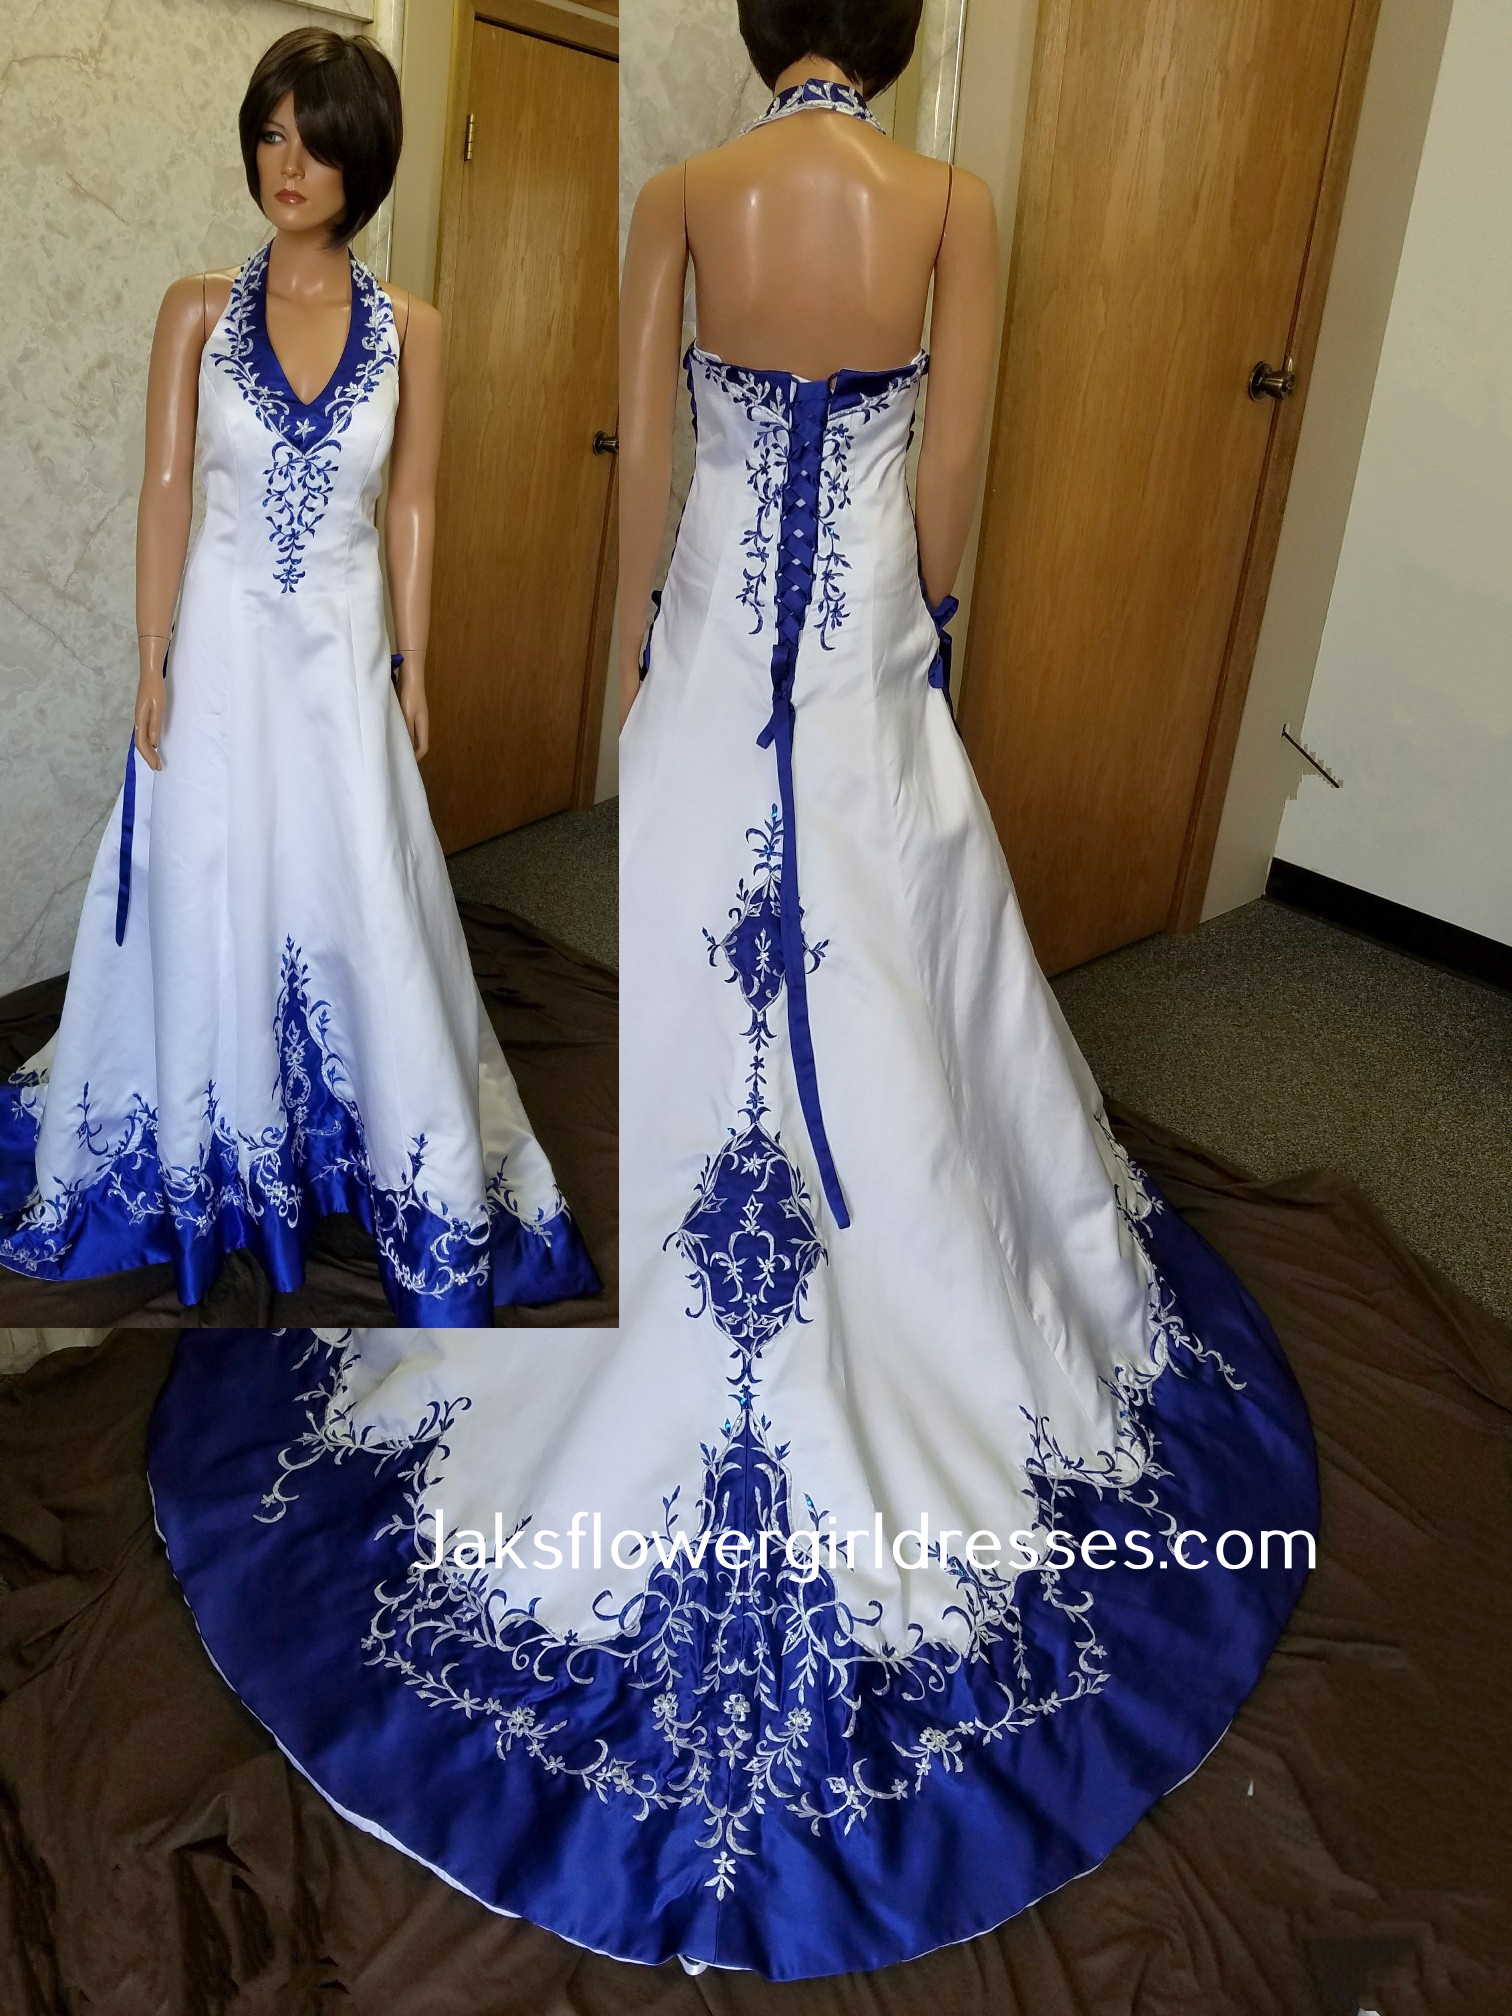 white wedding dress with royal blue